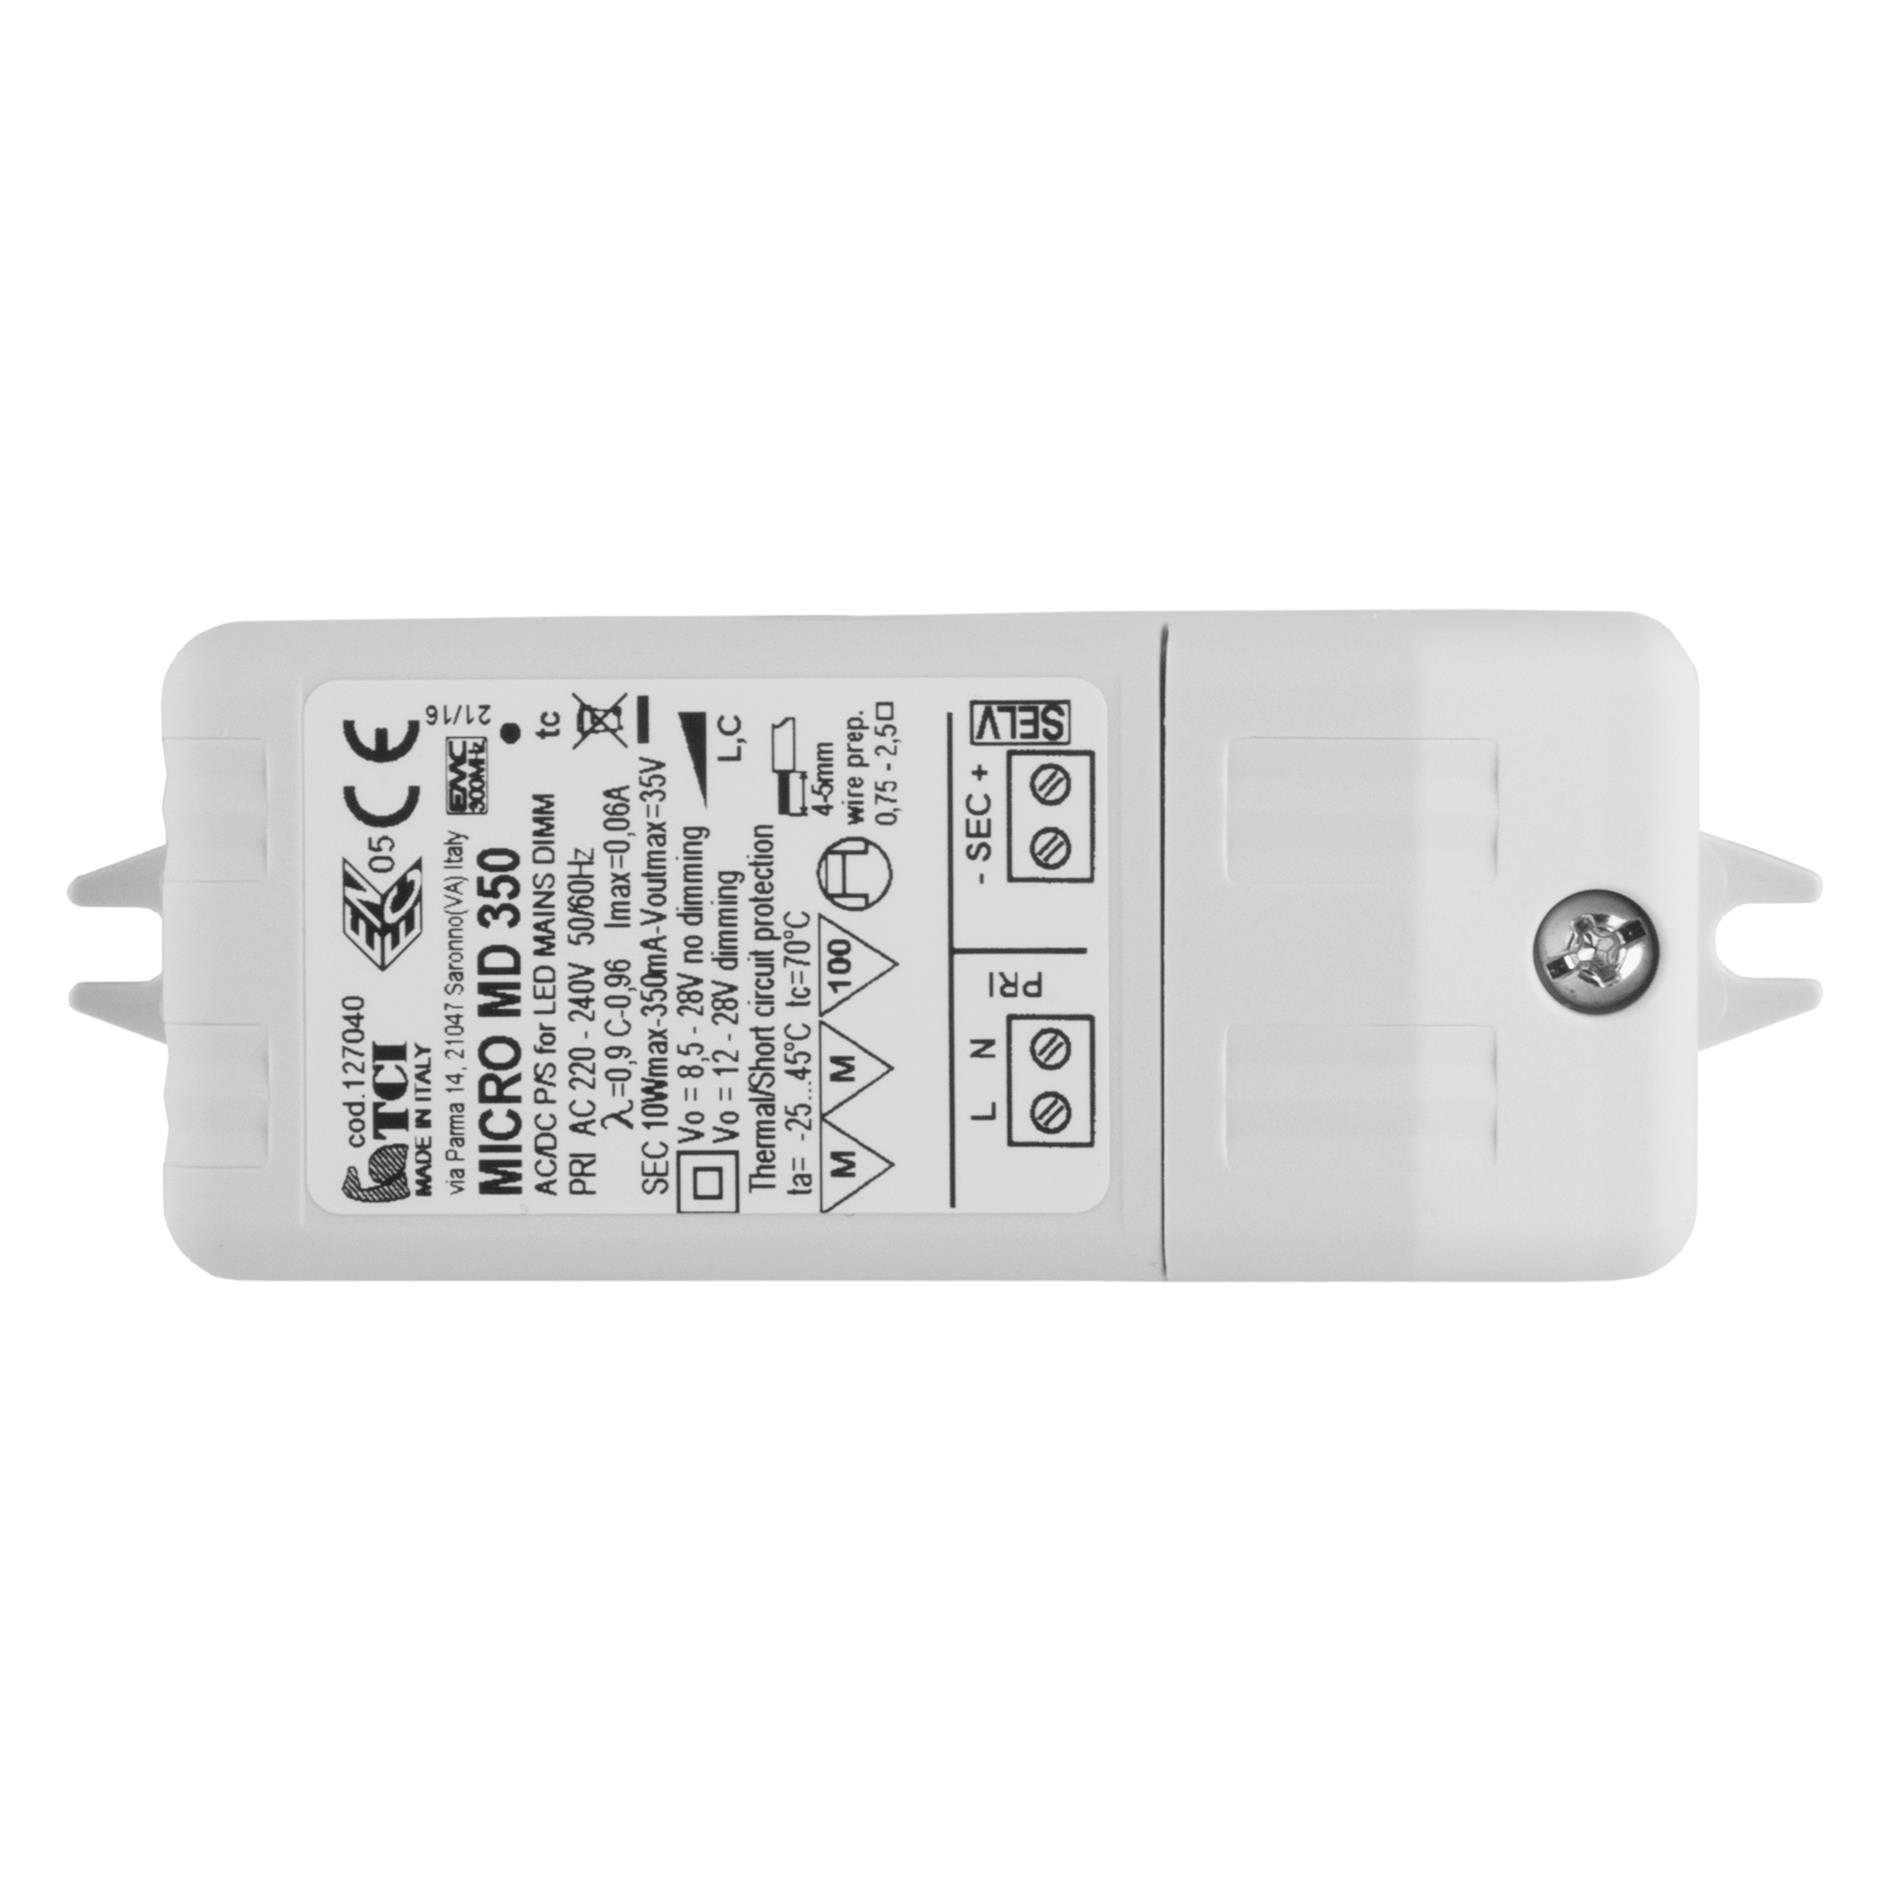 Dimming Led Driver 6w 10w 350ma Wireless Radio Technology Dimmers For Circuits Dimmer Circuit Simple Jpg